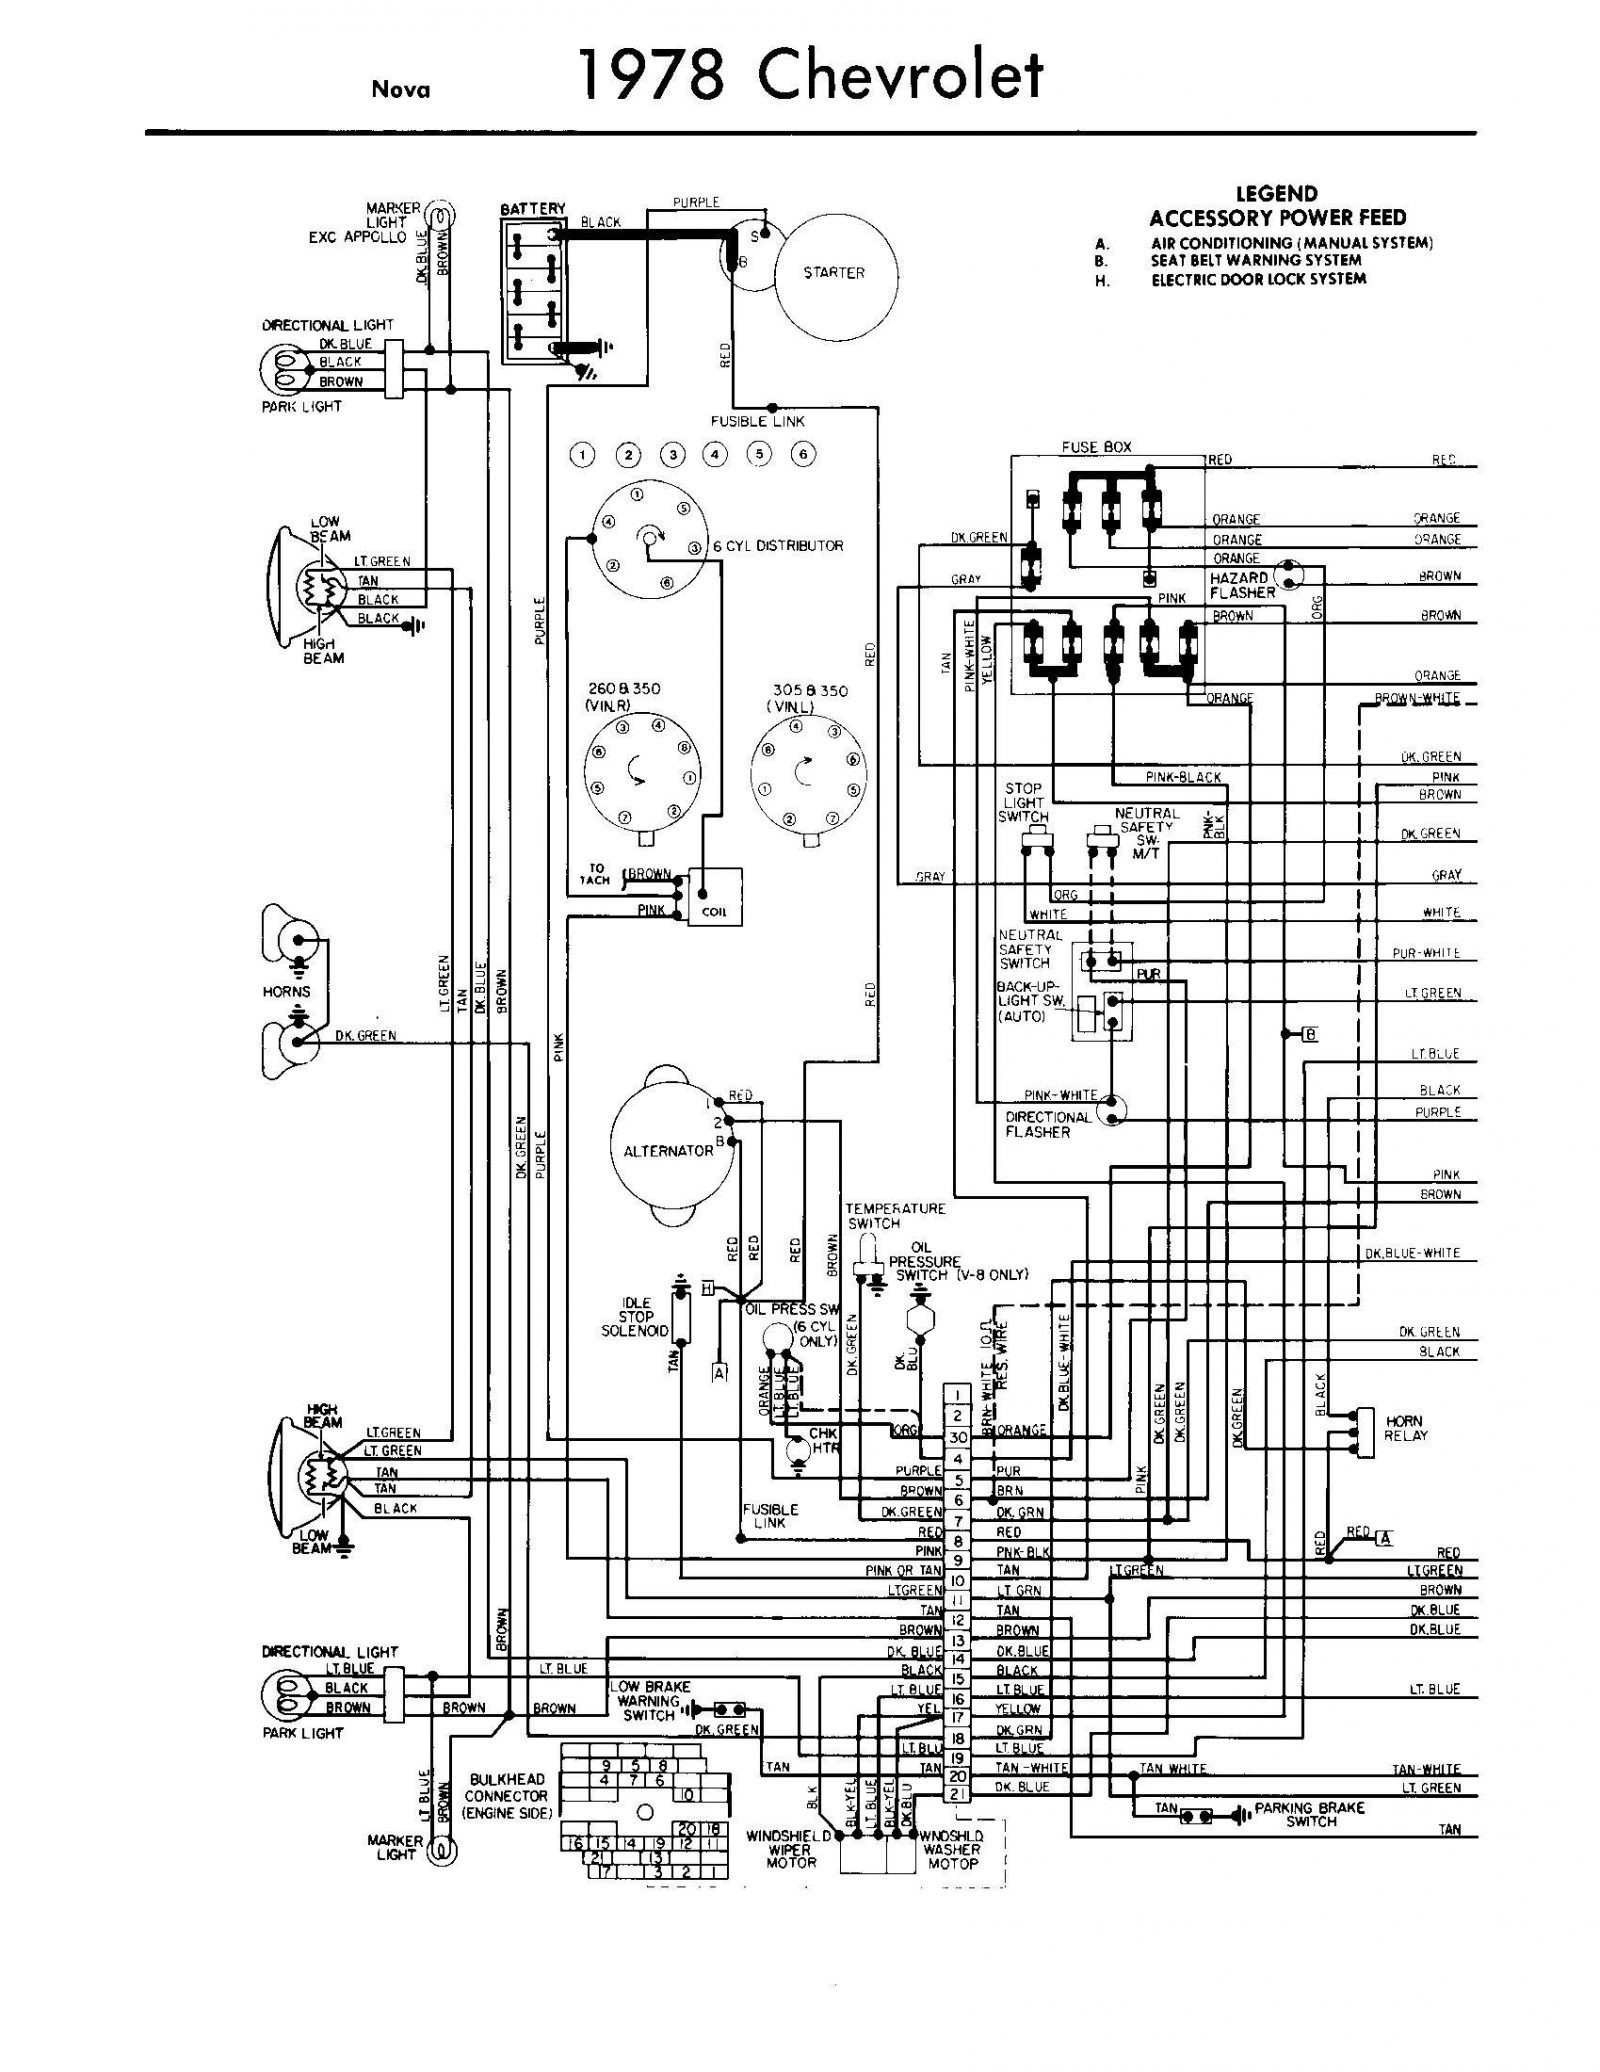 electric meter box wiring diagram Download-Wiring Diagram Electrical Meter Box Valid Wiring Diagram for 200 Amp Breaker Box Fresh Lovely 200 3-i